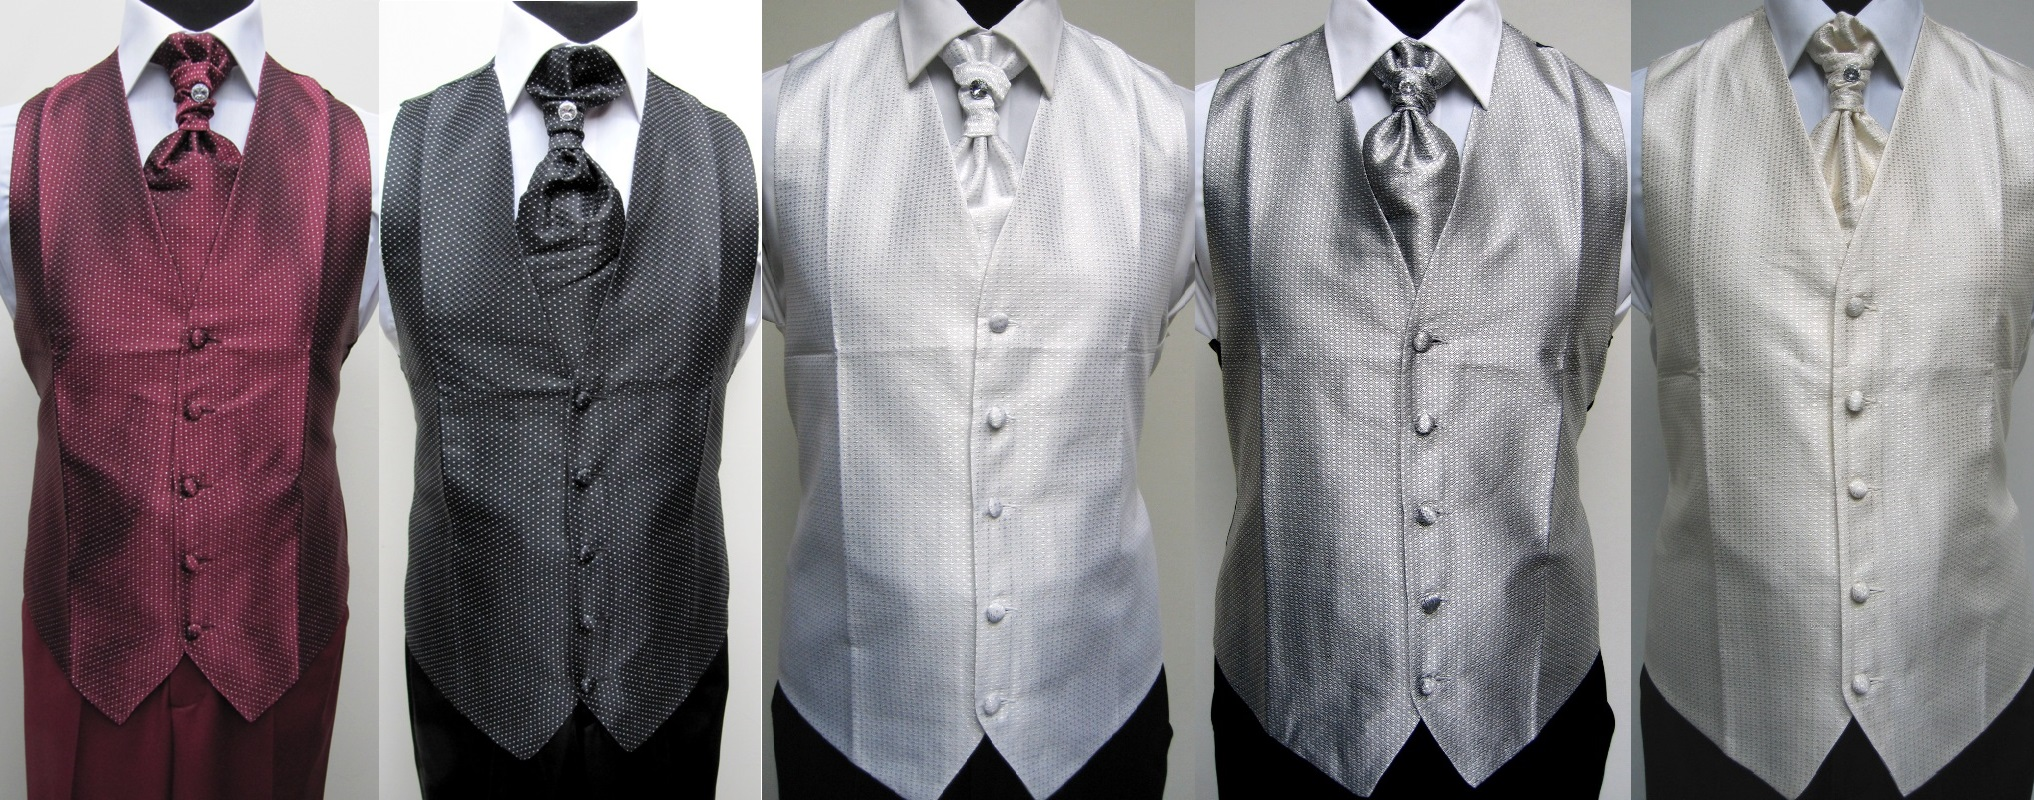 how to make a cravat youtube